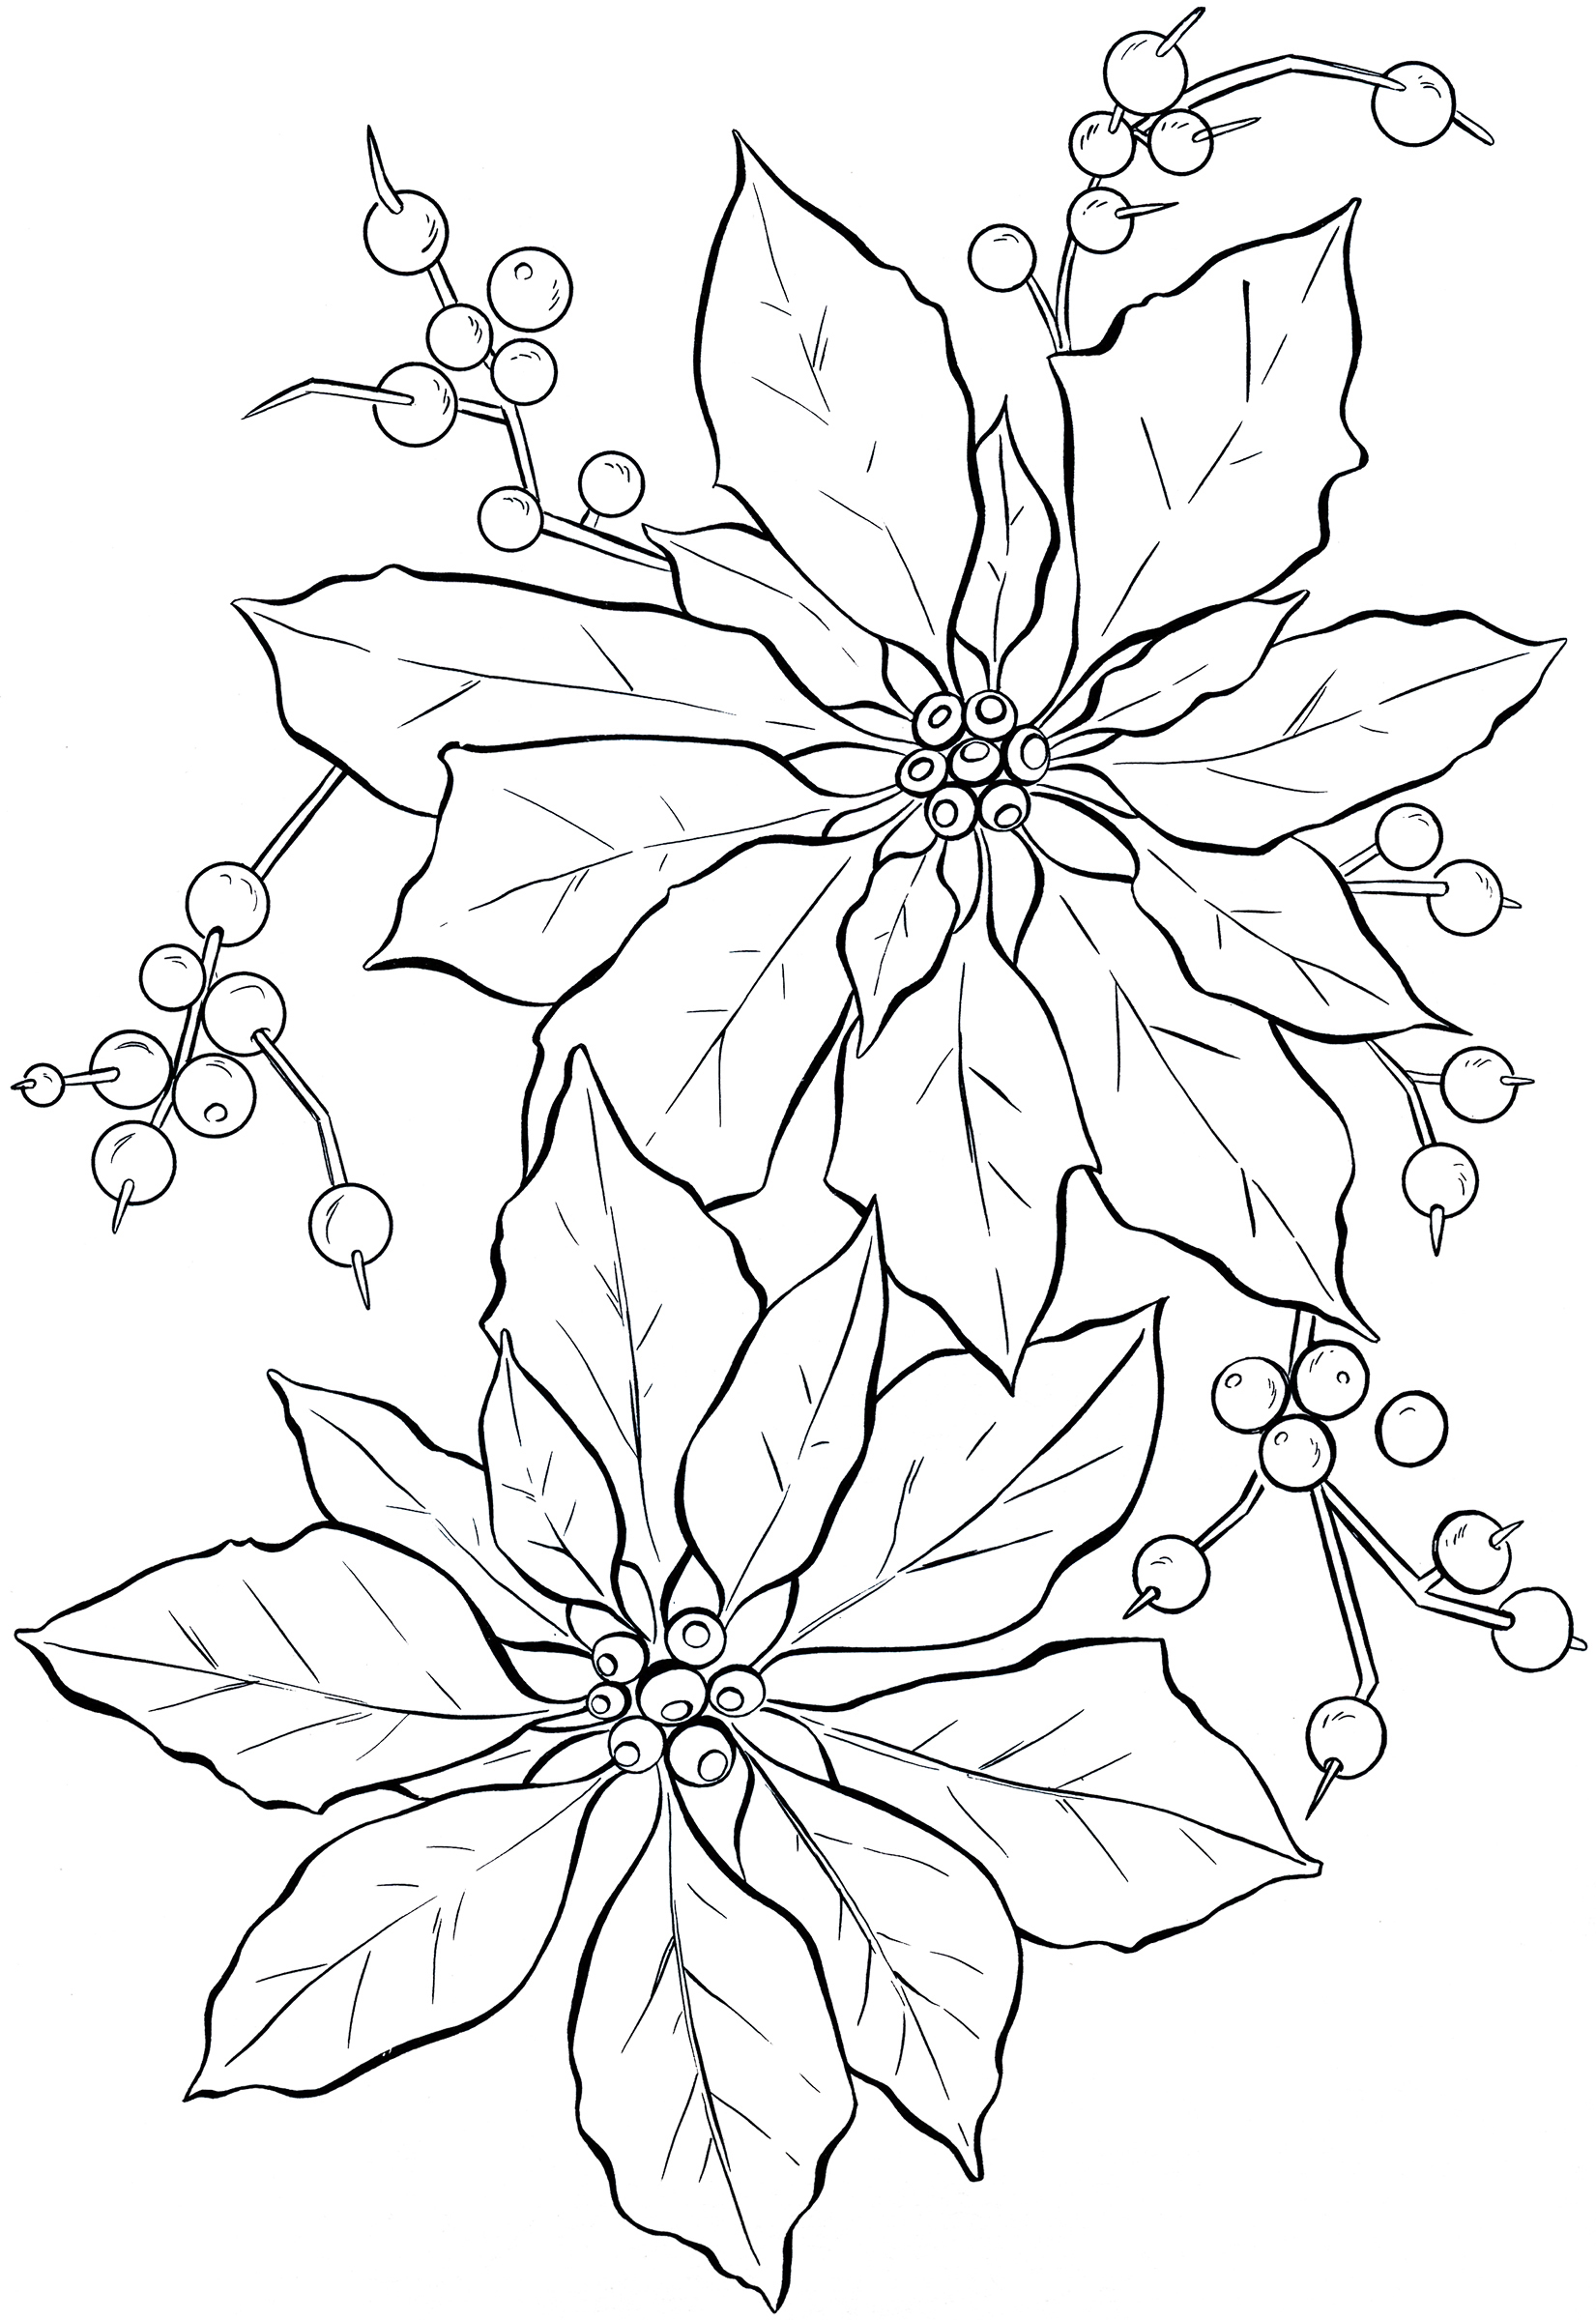 Line Art Xmas : Poinsettia line art christmas the graphics fairy